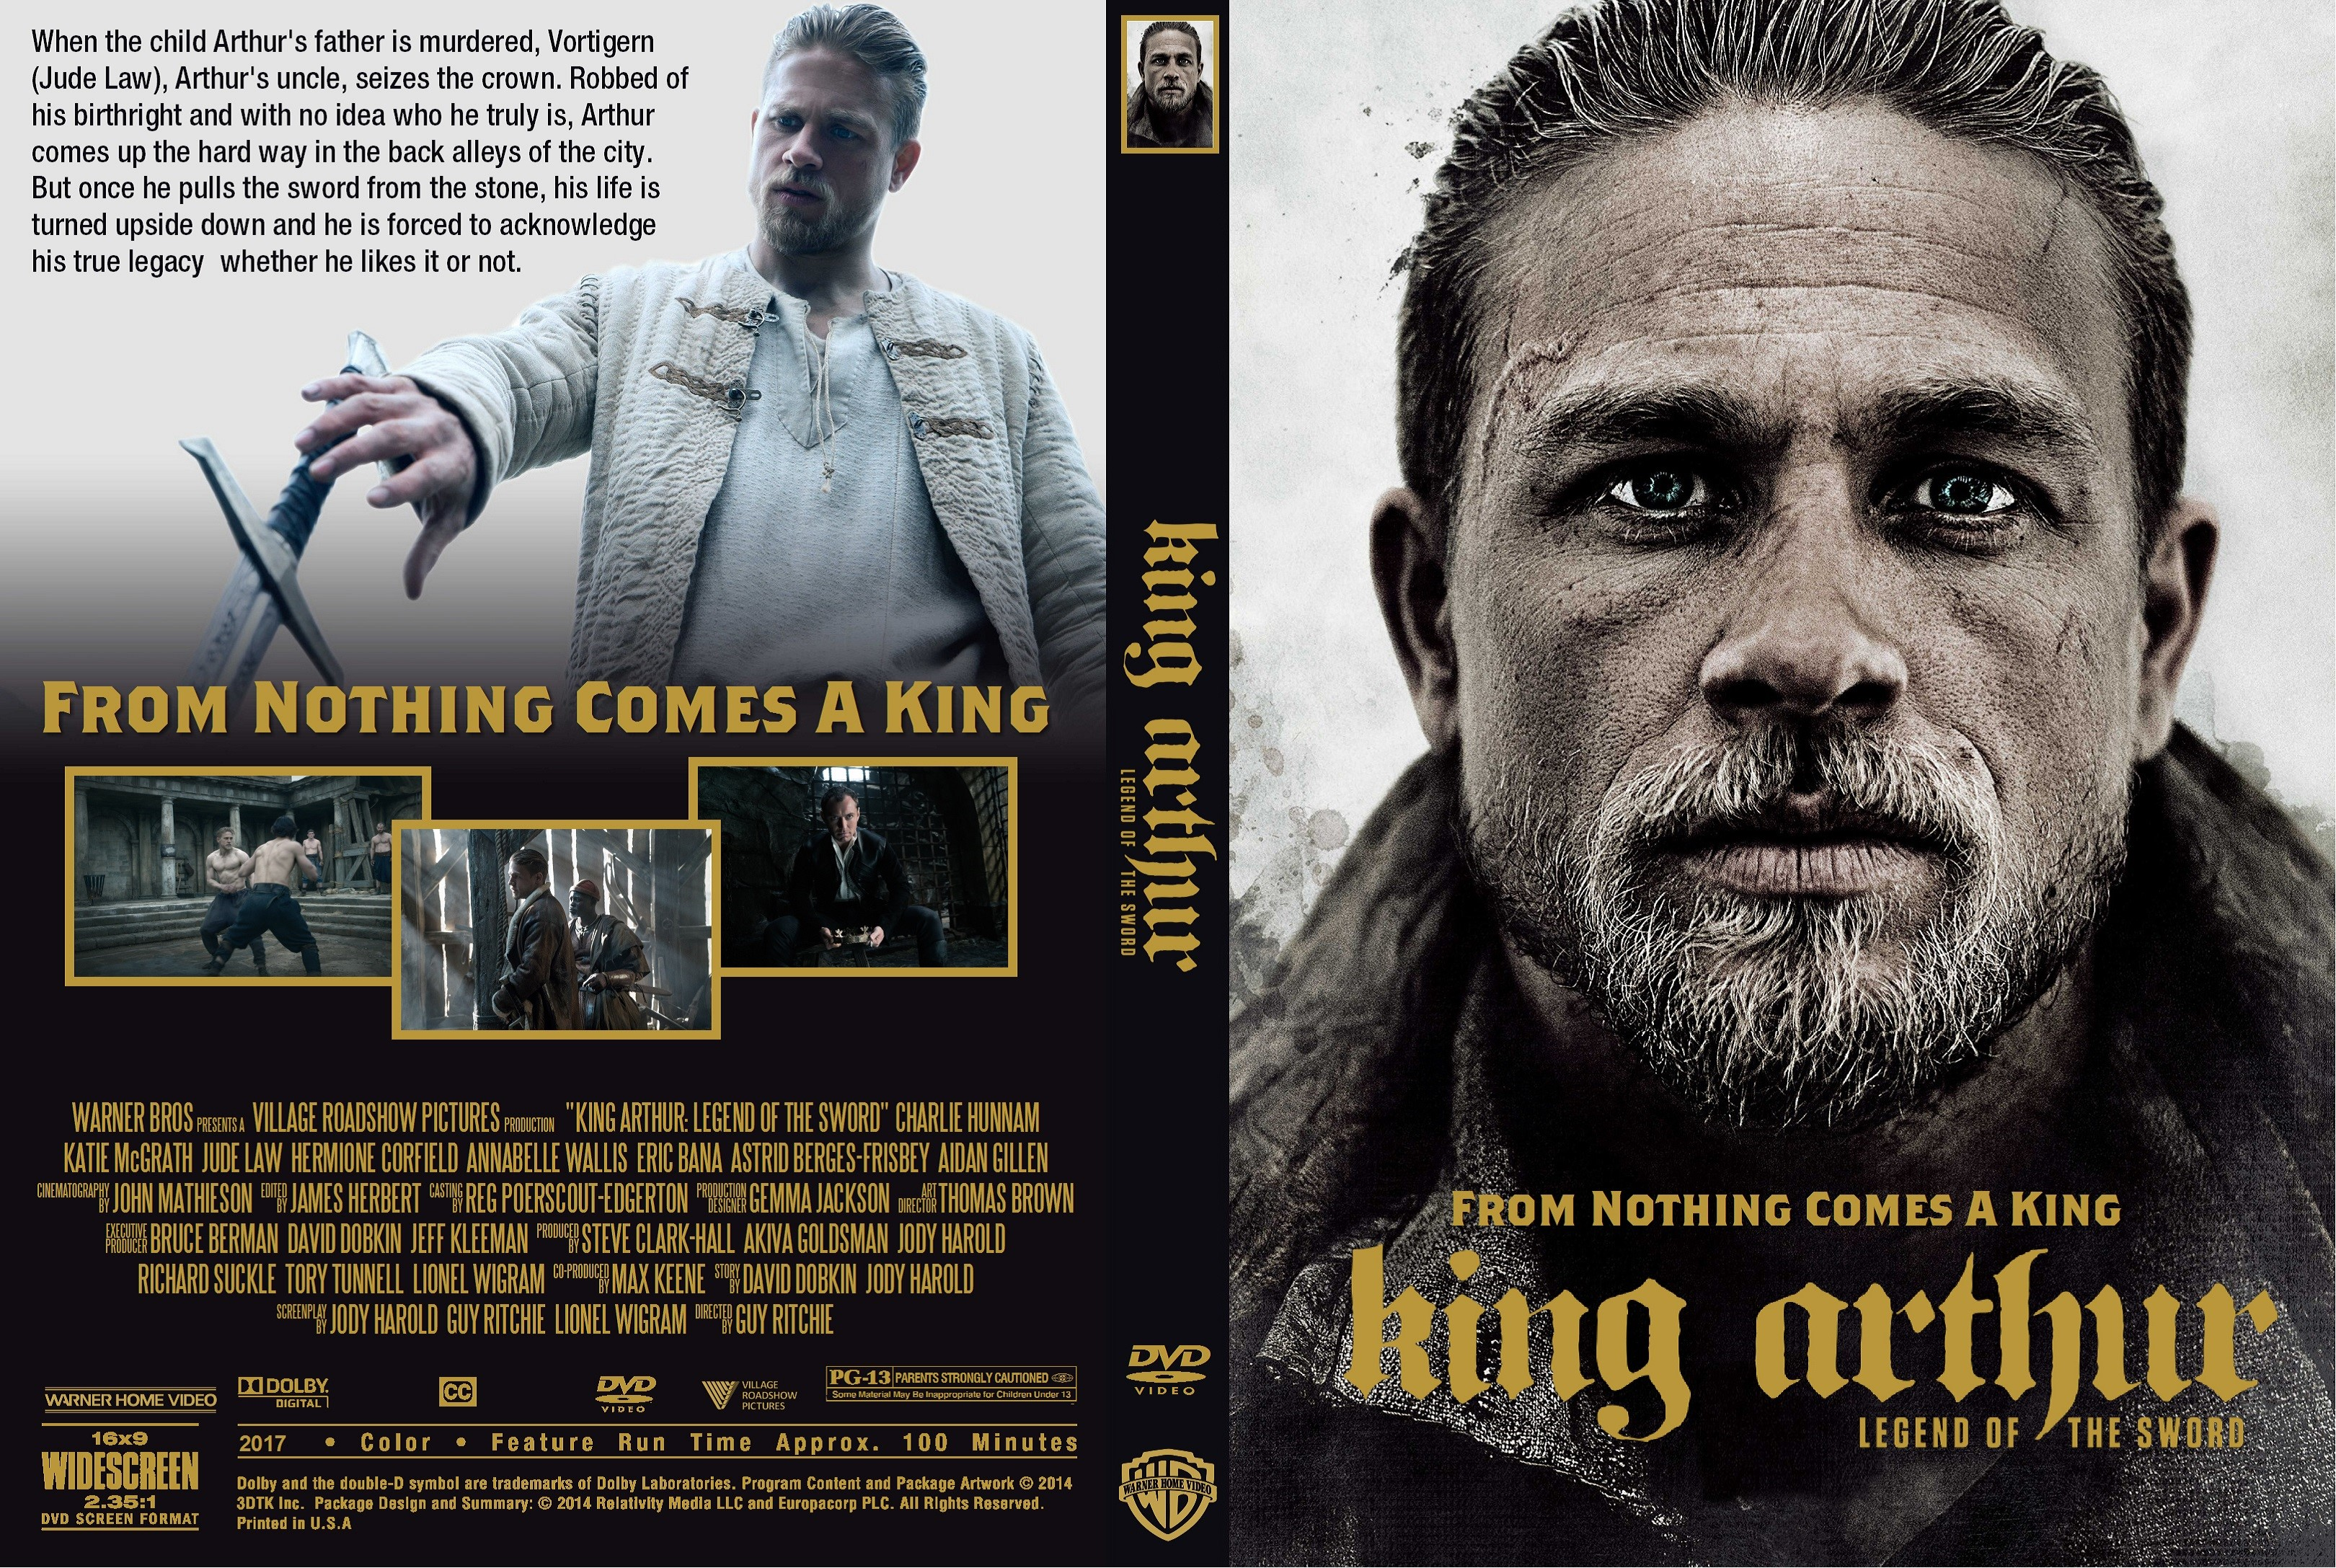 King Arthur Legend Of The Sword DVD Cover | Cover Addict ...